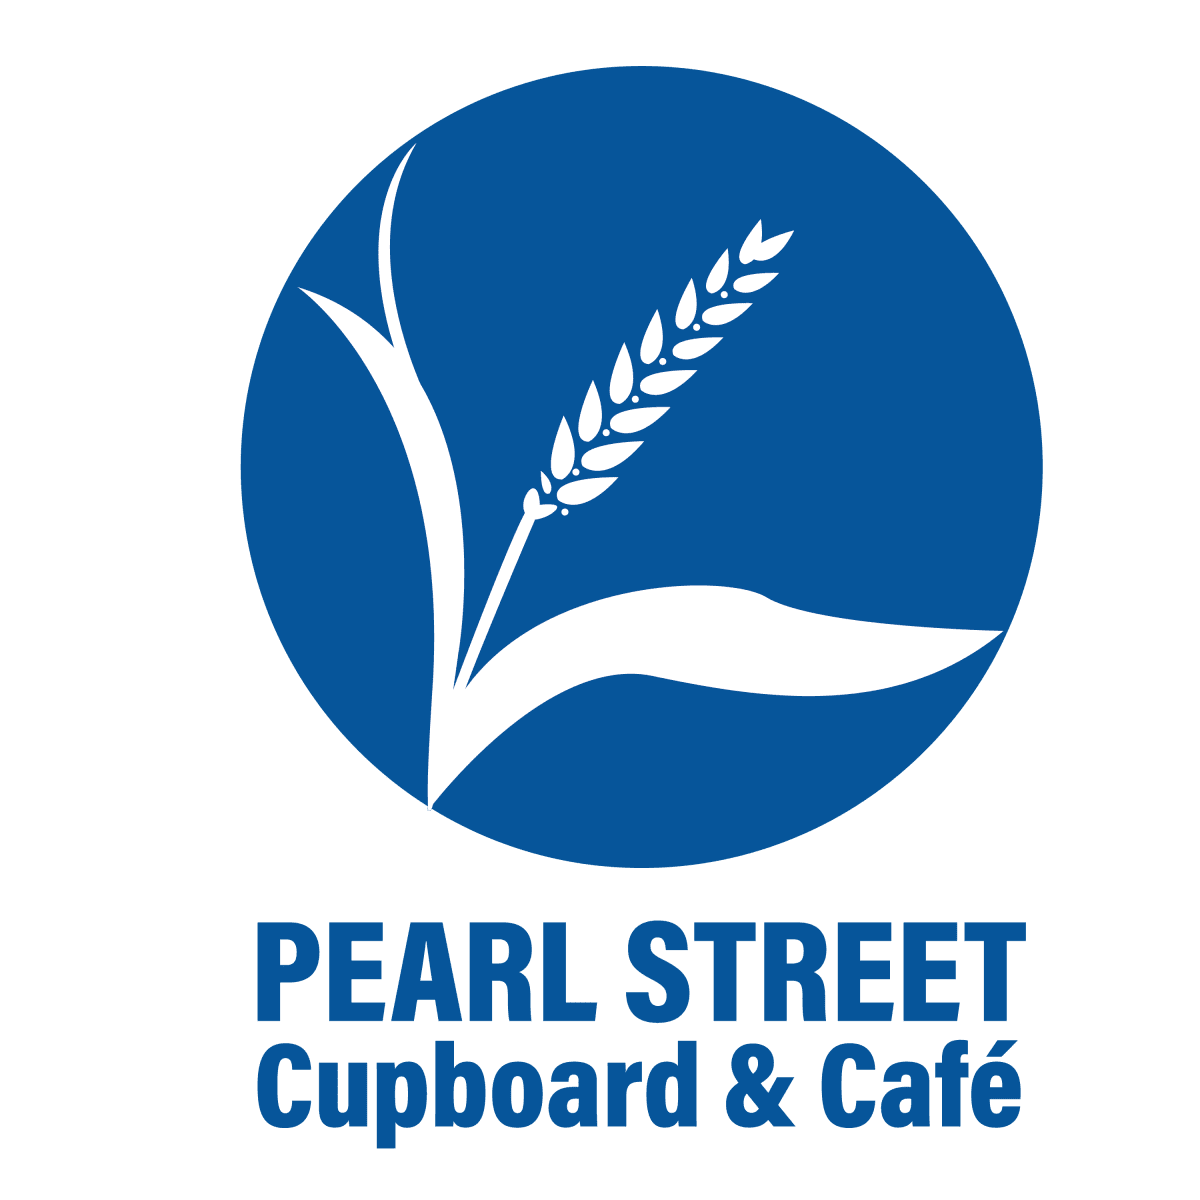 United Way of Tri-County Pearl Street Cupboard & Cafe at Park